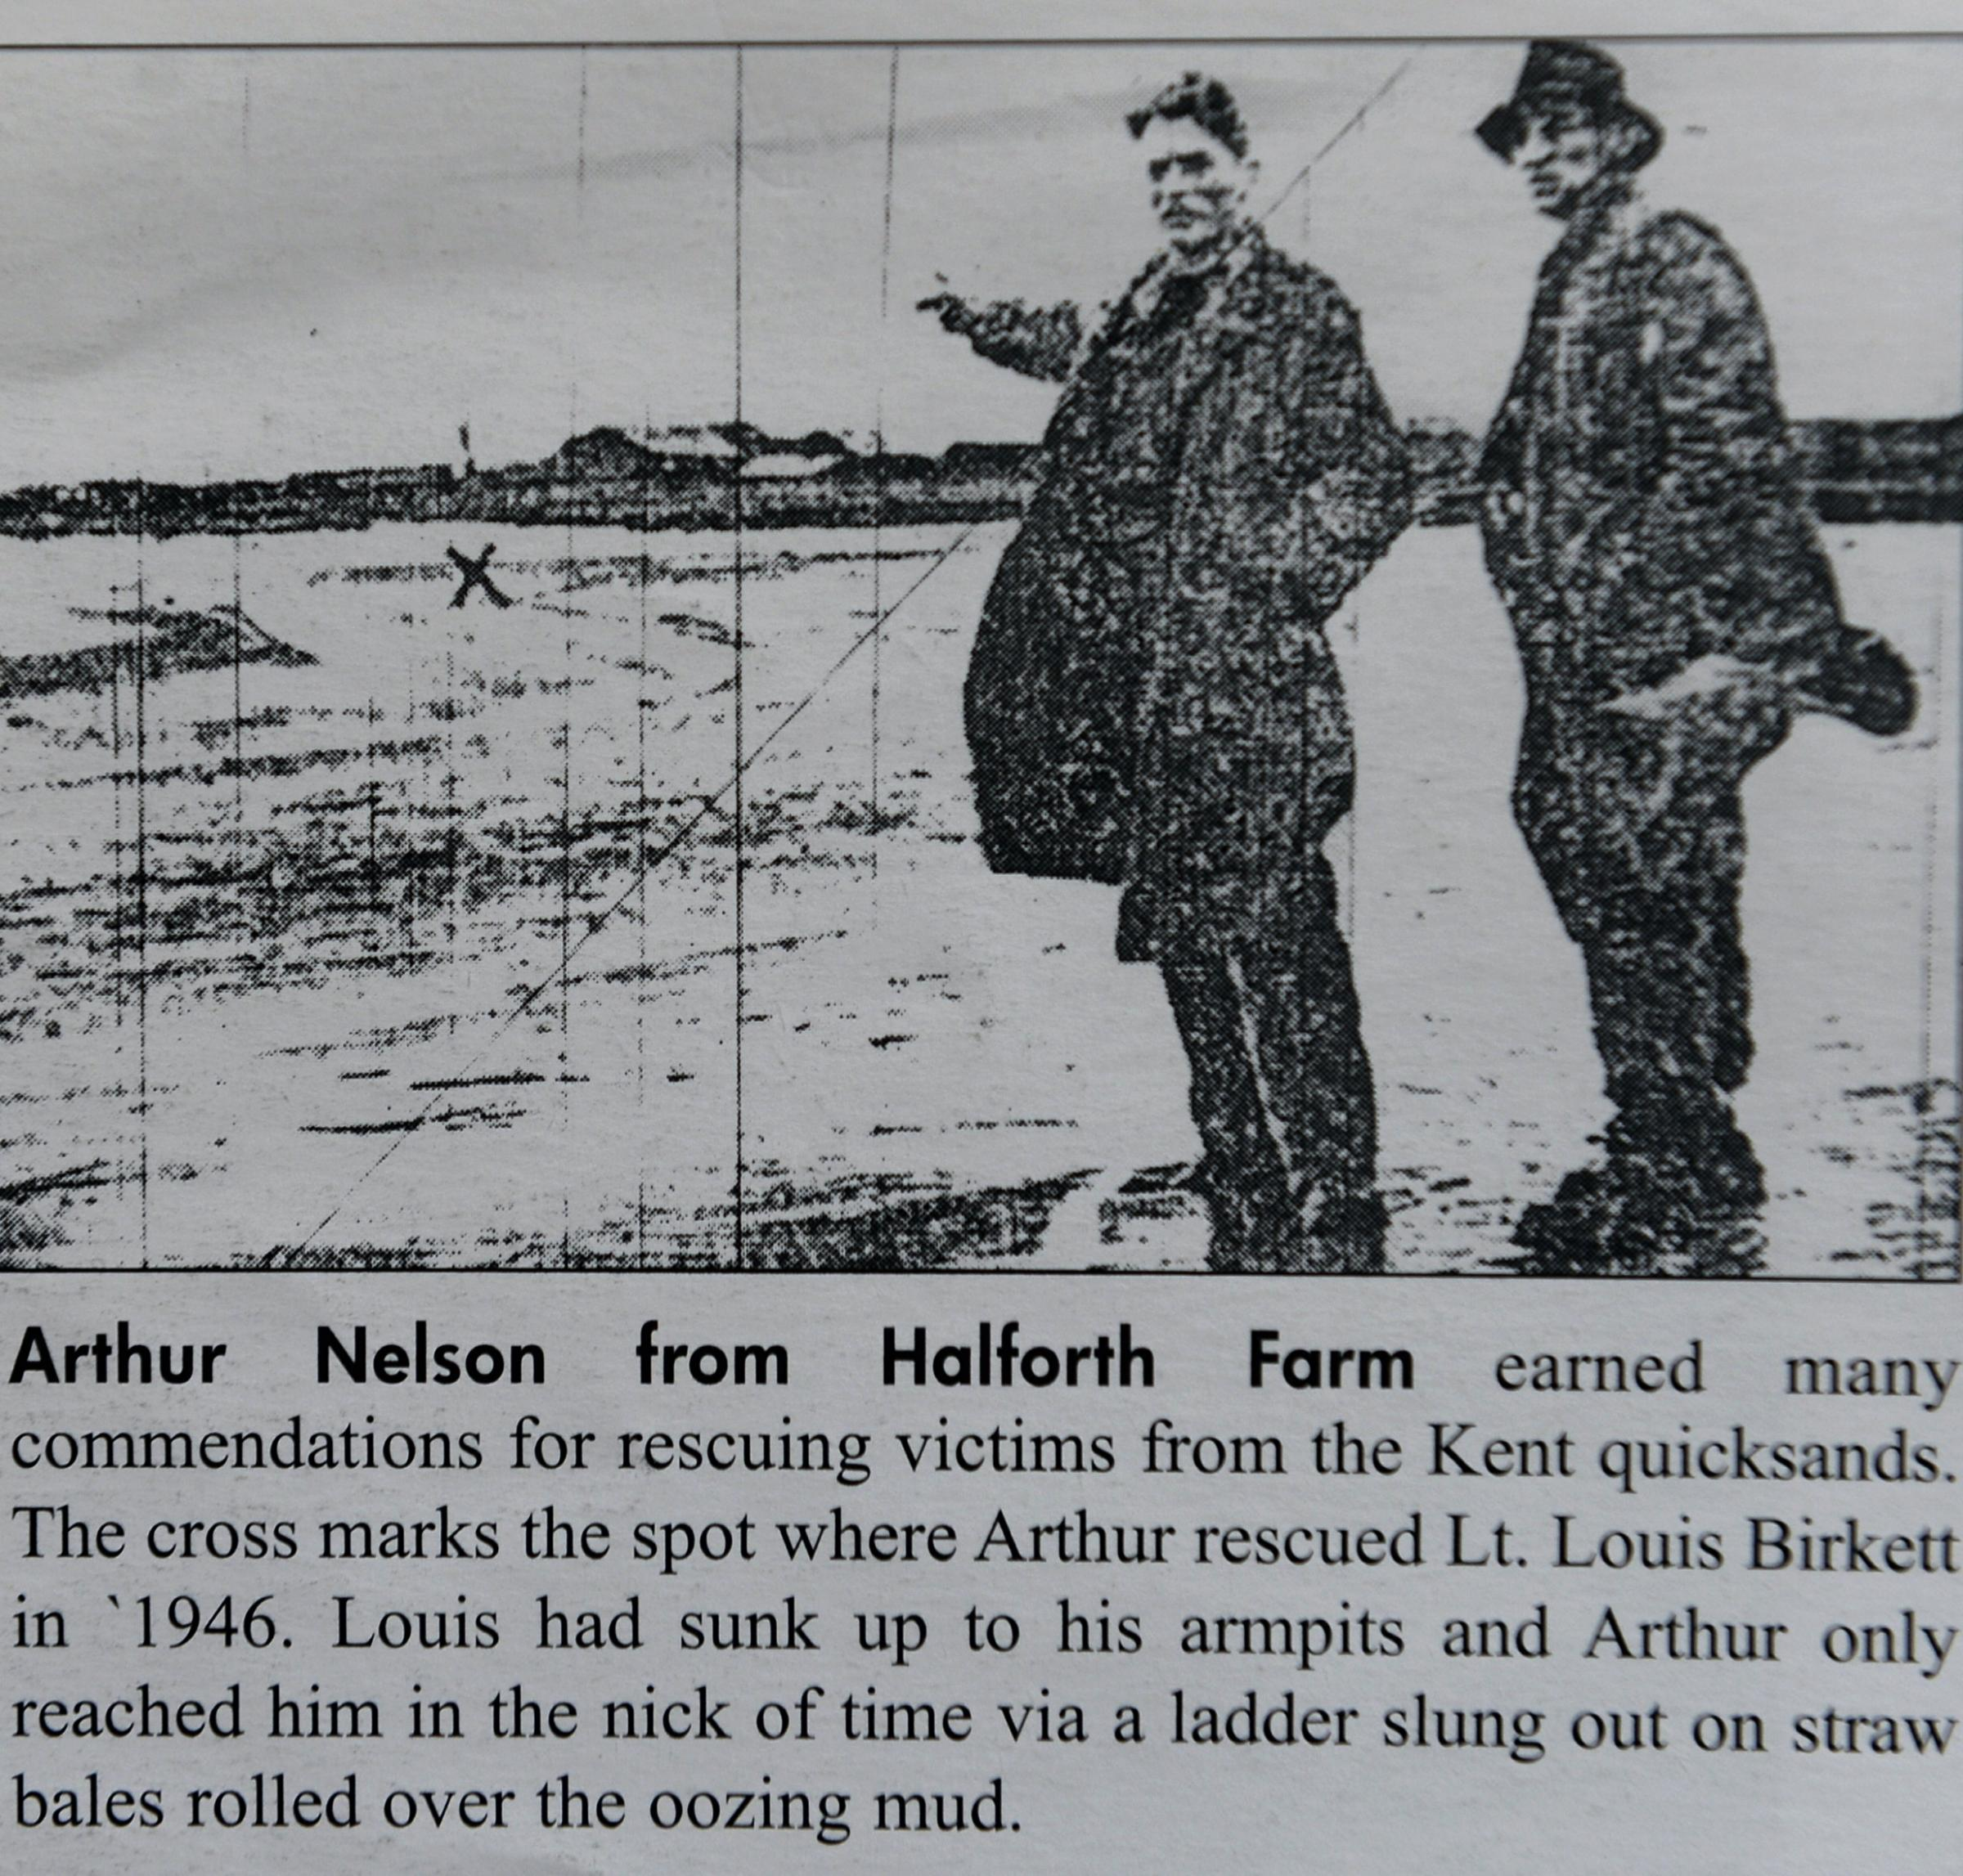 Arthur Nelson from Halforth pointing to where he rescued by Lt Louis Birkett after he had sunk up to his arnpits in the quicksands